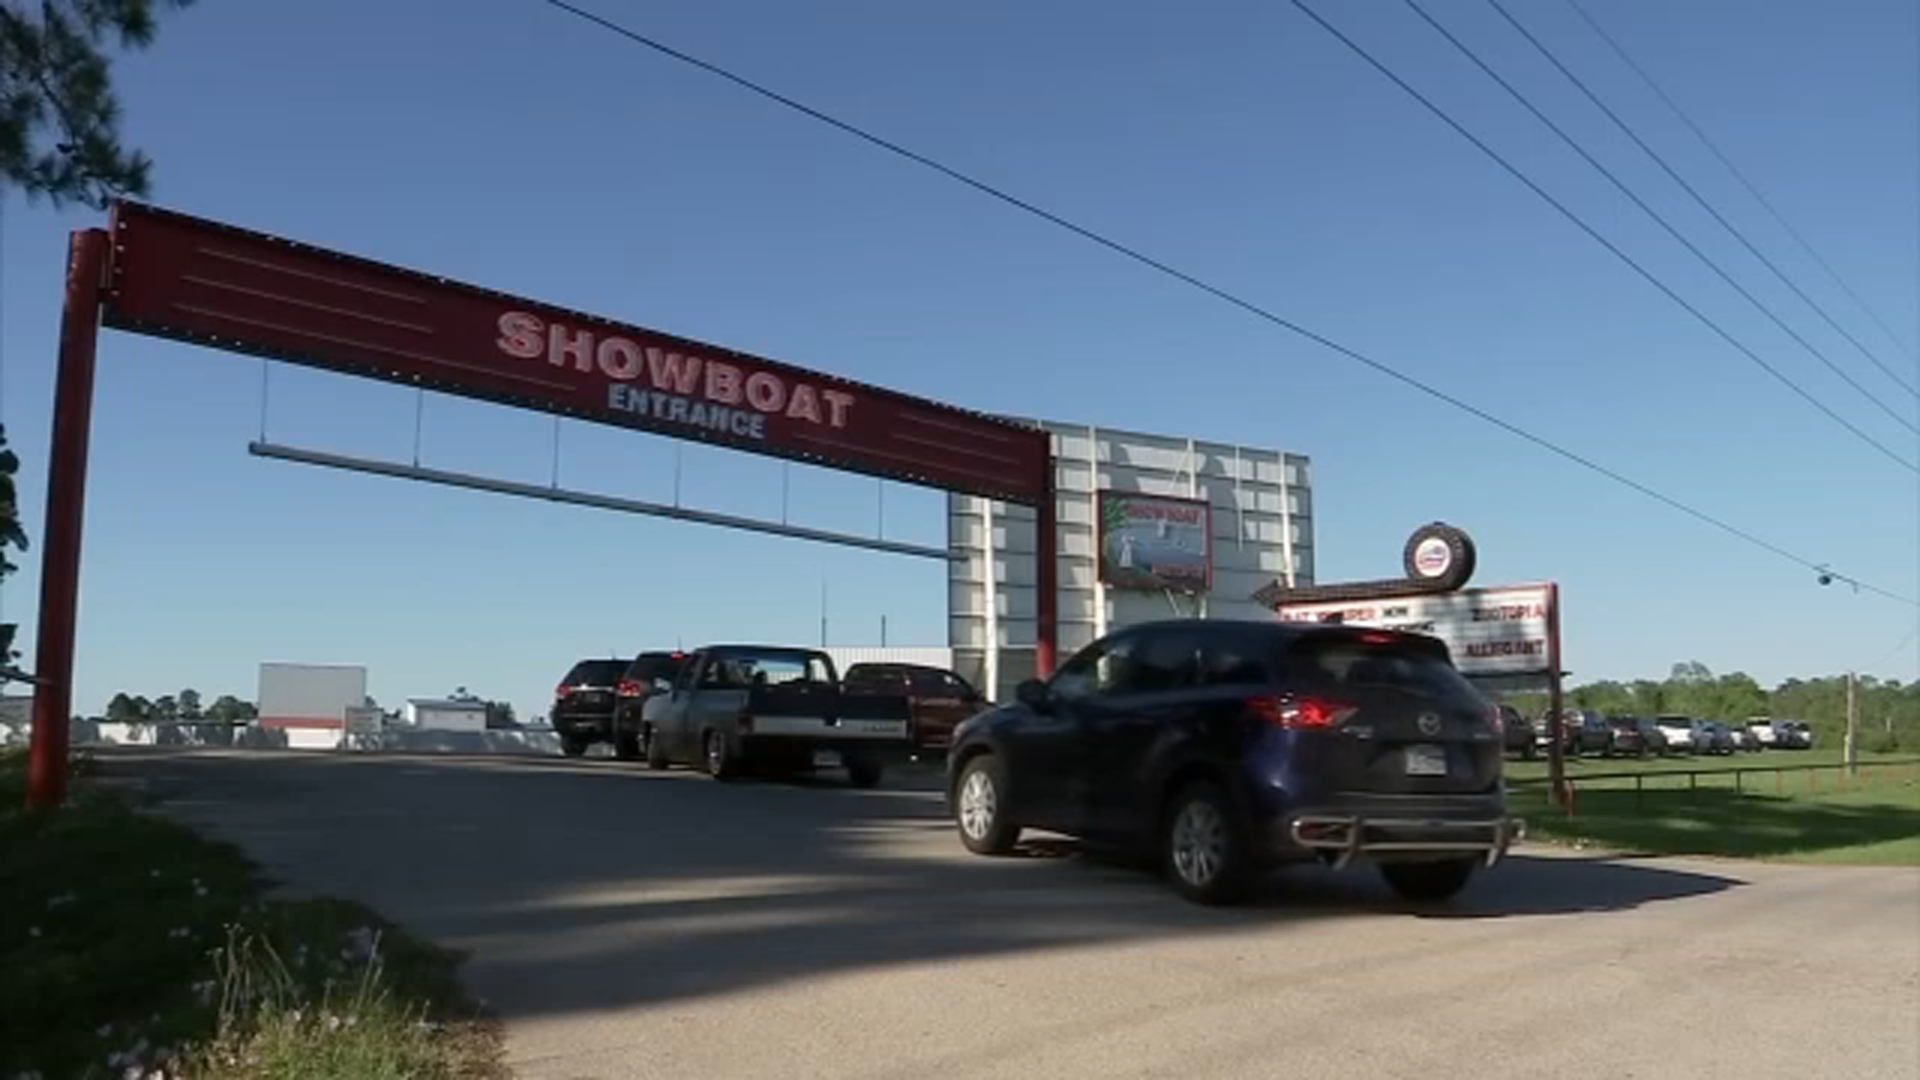 Business Is Booming For Showboat Drive In Theater In Hockley Amid Covid 19 Outbreak Abc13 Houston